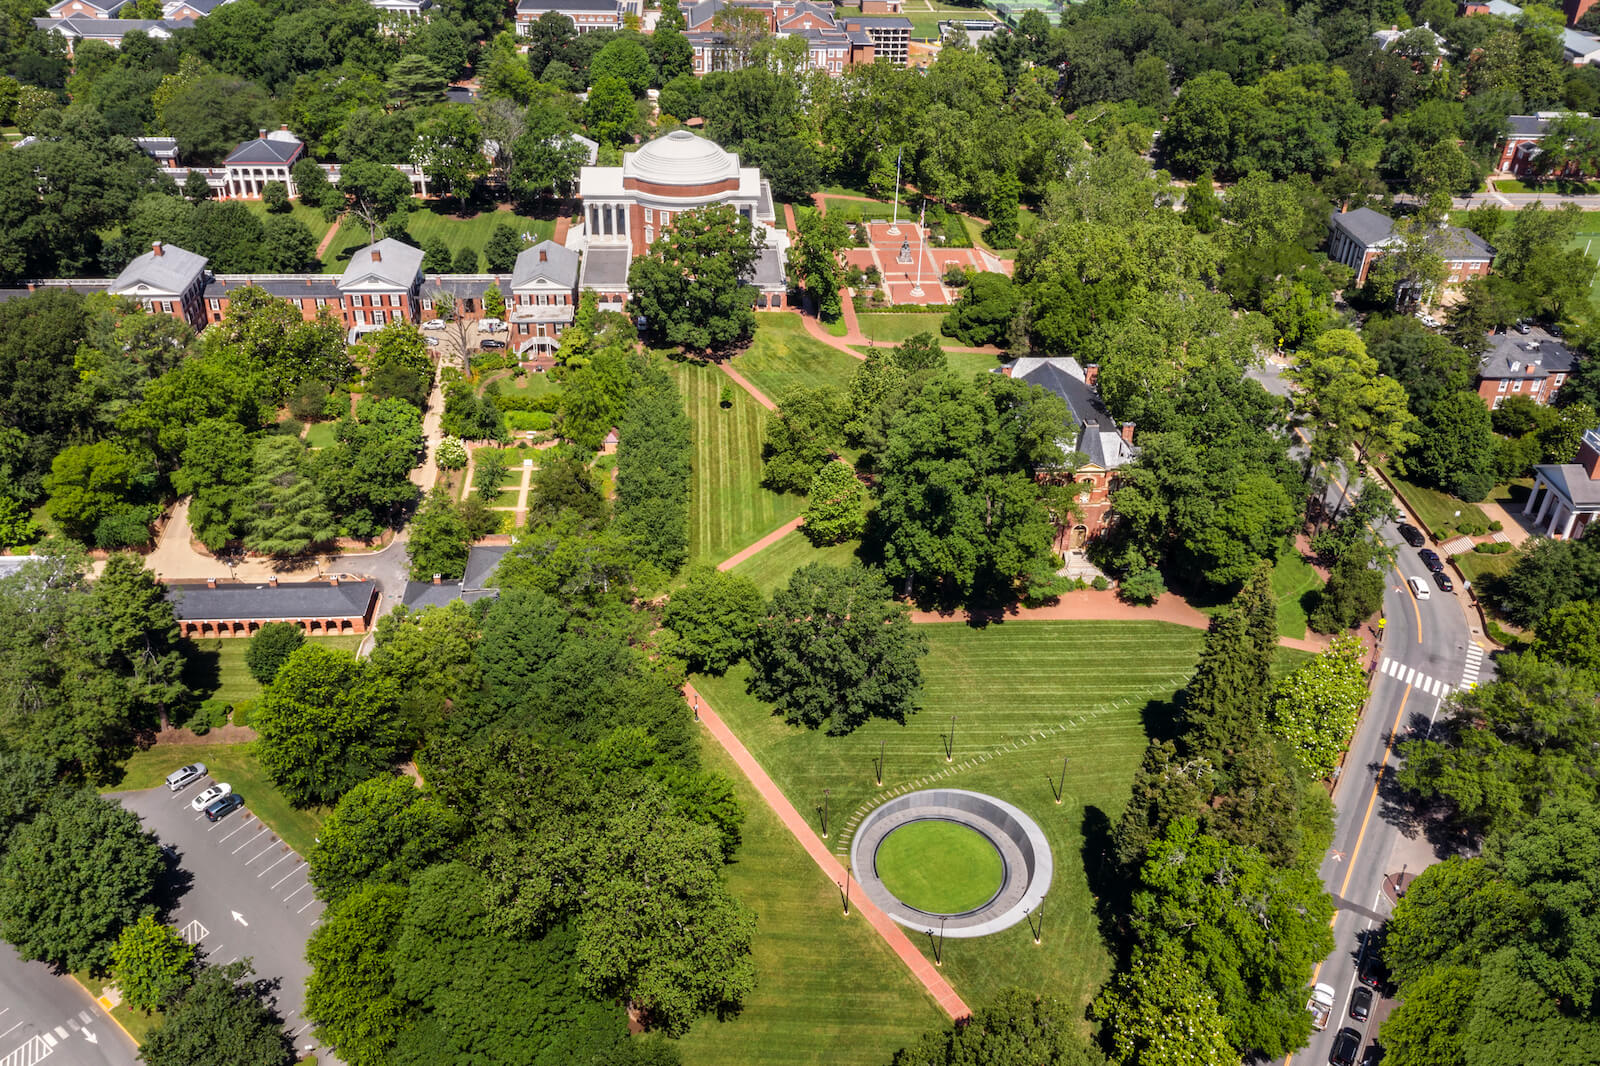 aerial shot of the Memorial to Enslaved Laborers at the University of Virginia in Charlottesville